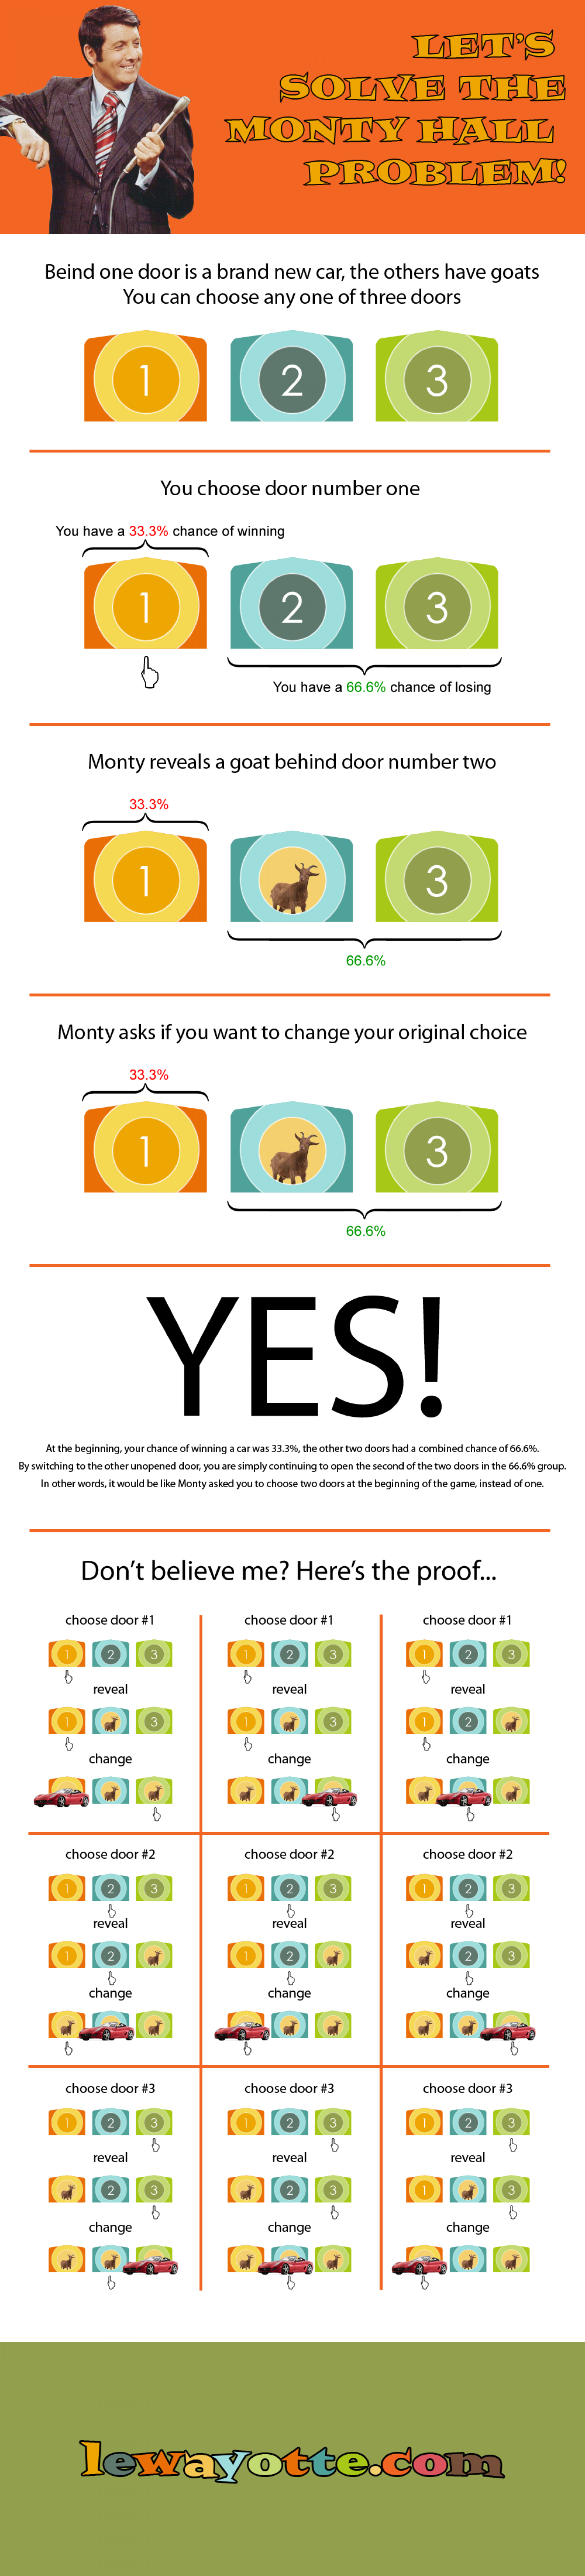 Let's Solve the Monty Hall Problem Infographic